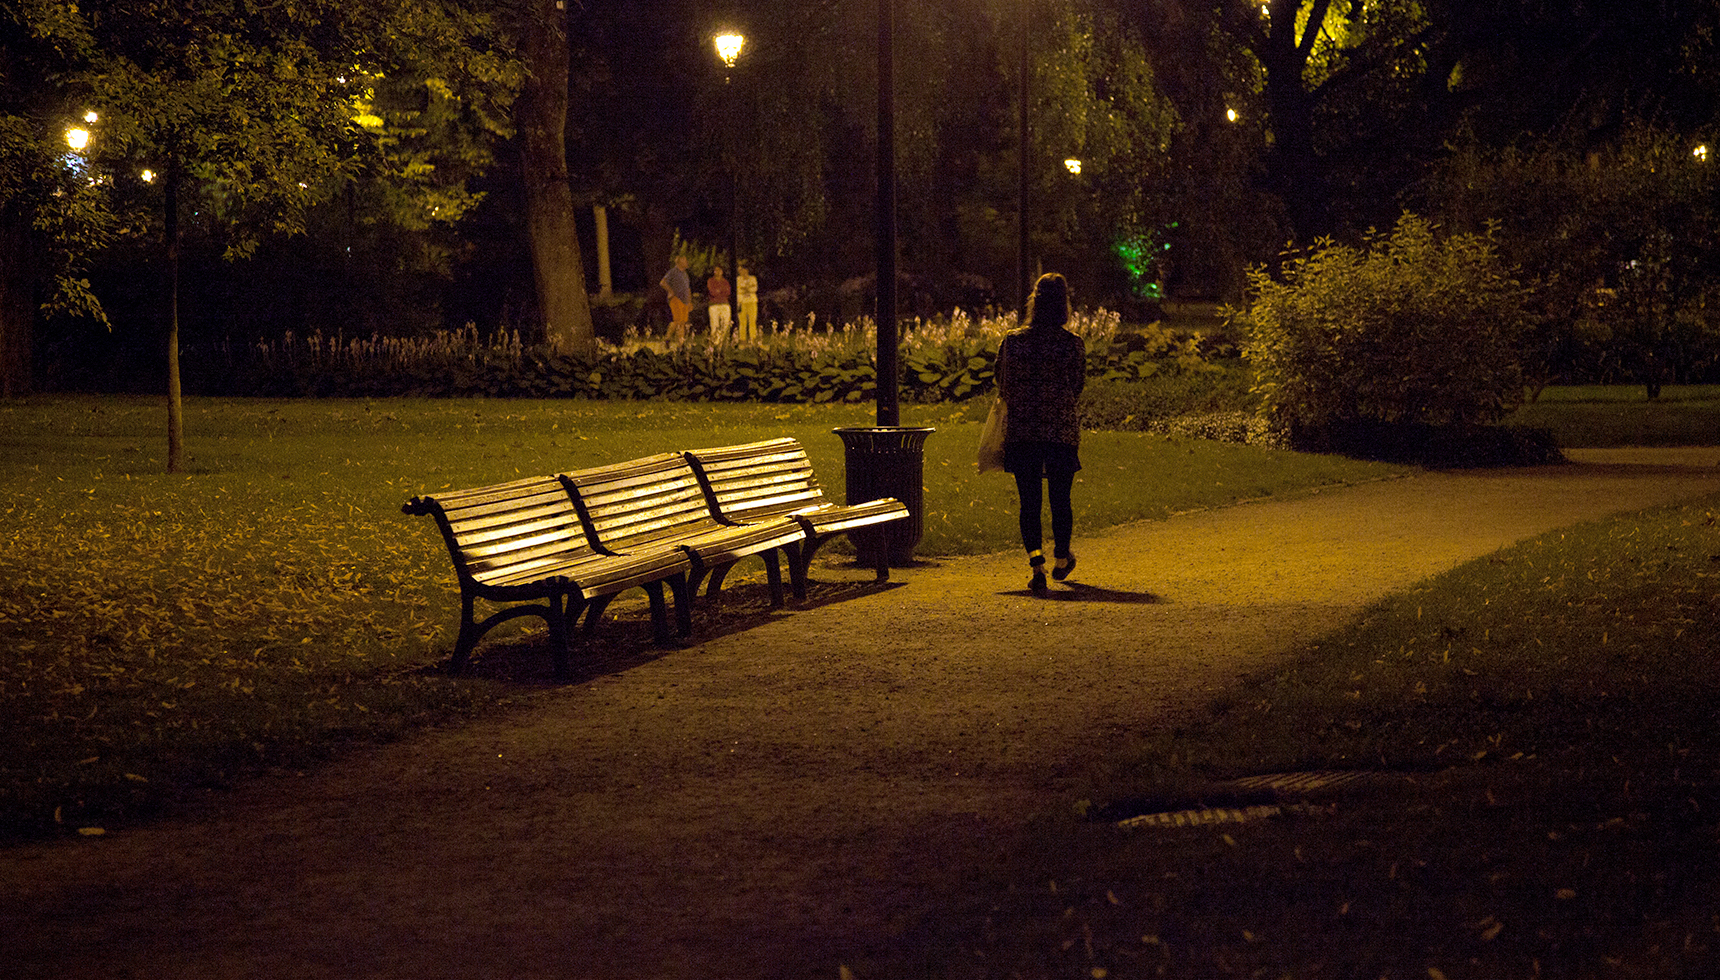 The Strange Half-Absence of Wandering at Night